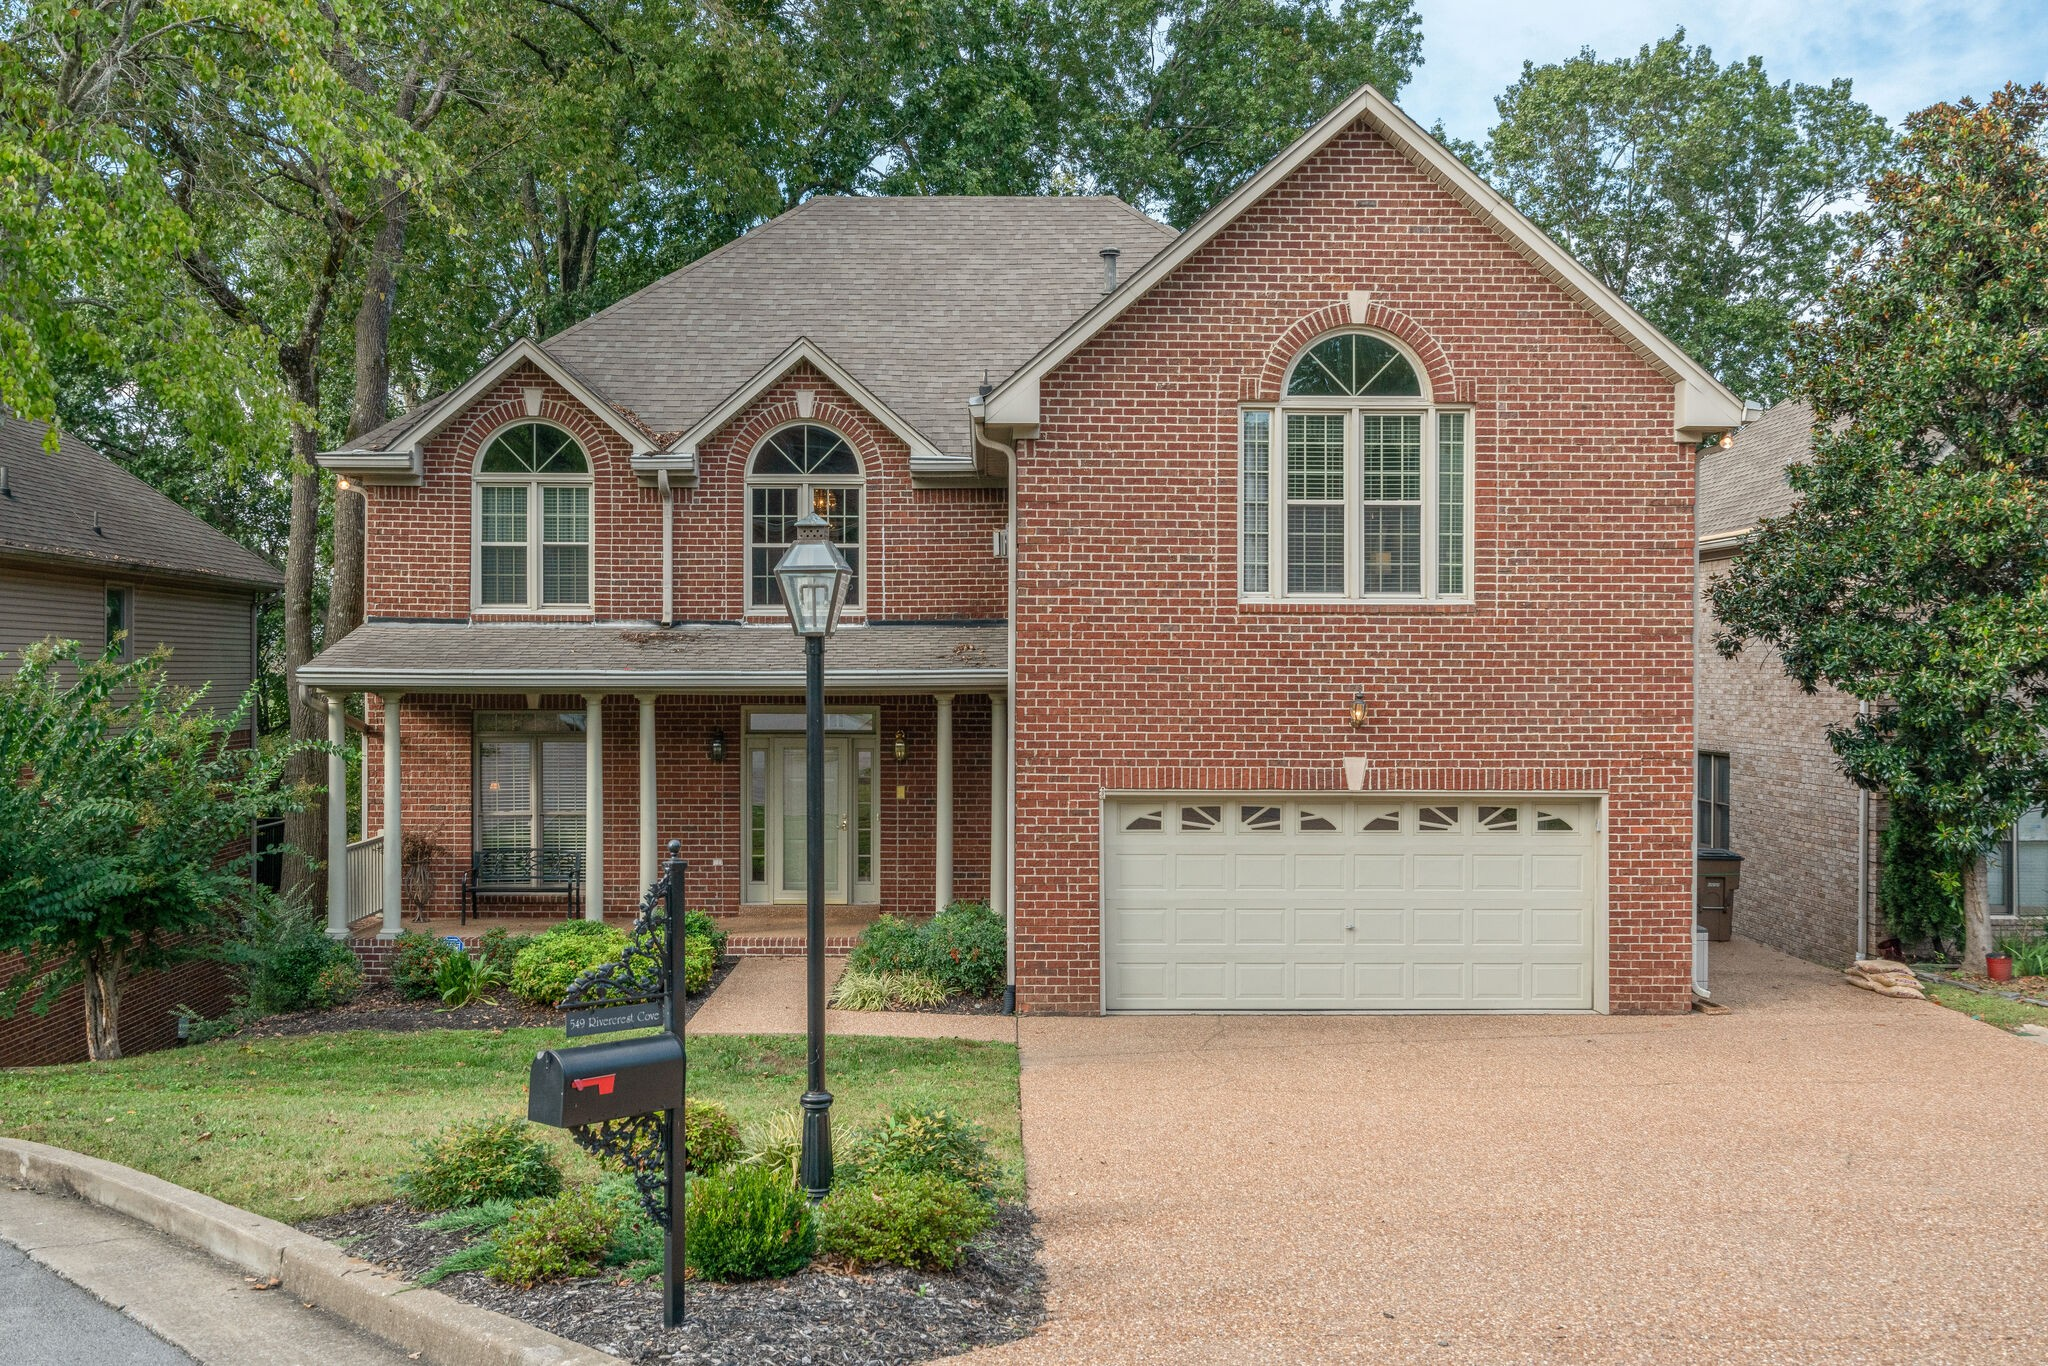 This wonderful Frank Batson home in the beautiful River Crest community has 5 bedroom/3.5 baths and plenty of space all around.  With a fireplace in the Master Bedroom, security room, in-home vacuum system, stereo & intercom system. Incredibly spacious with 14 closets, a driveway that fits up to 6 cars, a storm cellar and a very comfortable living space below great for a music studio or mother in law suite. And just minutes from Donelson Y and Stones River Greenway, you won't want to miss it!